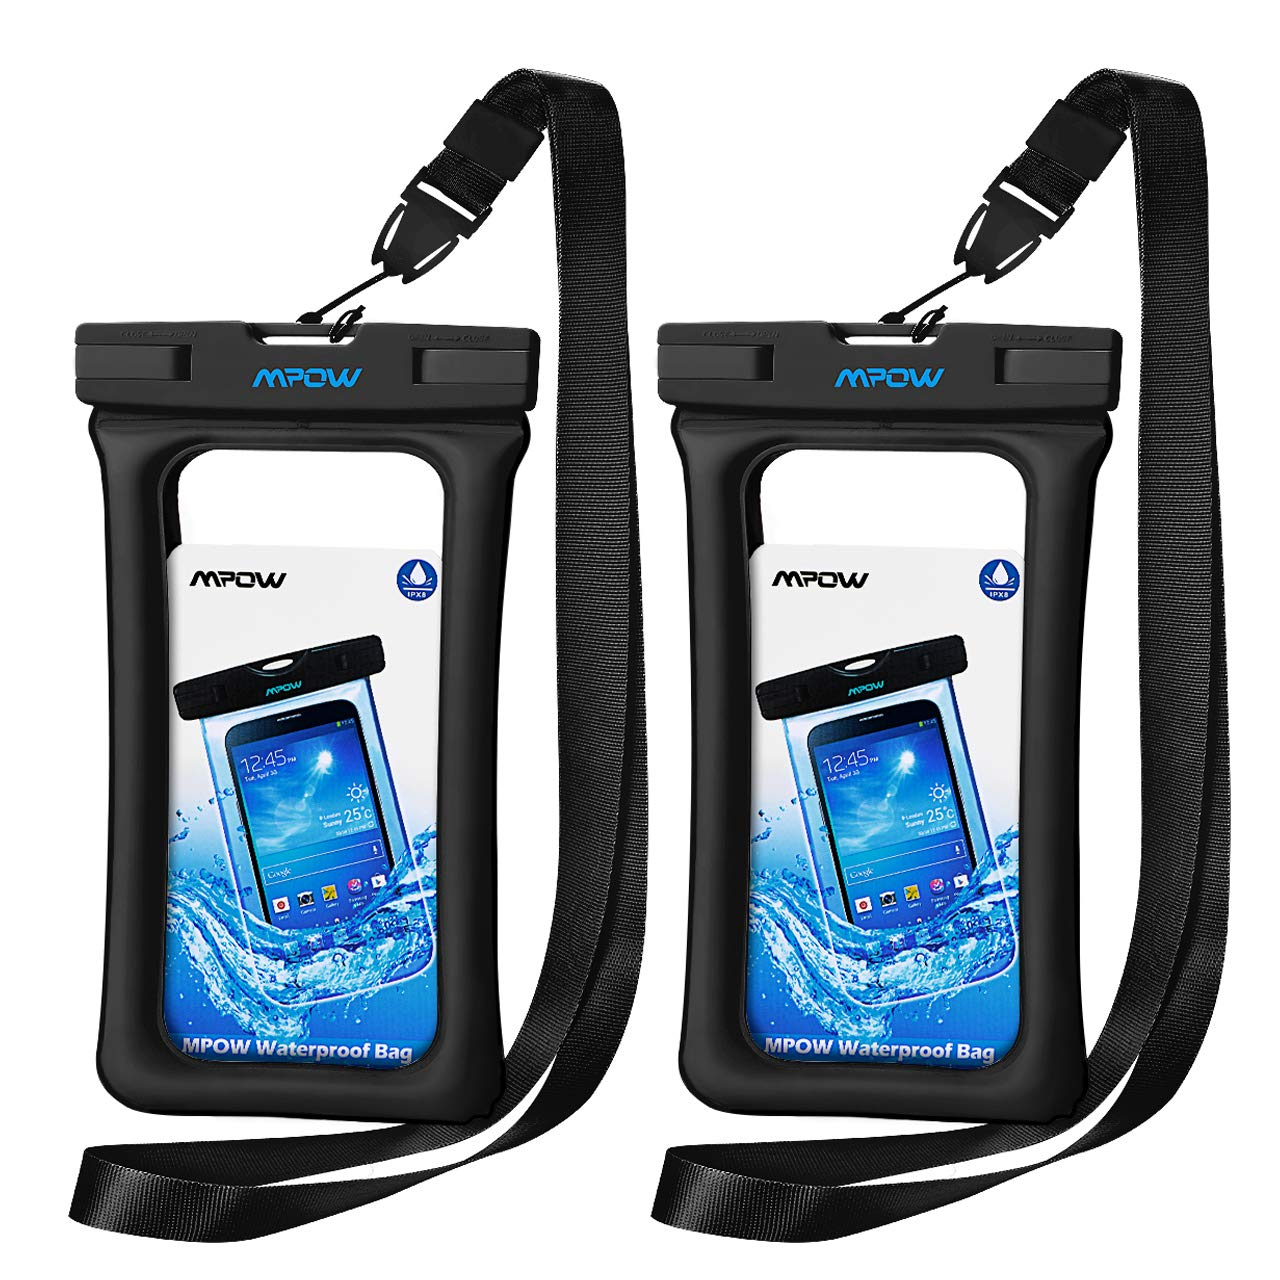 Mpow 084 Waterproof Phone Pouch Floating, IPX8 Universal Waterproof Case Underwater Dry Bag Compatible iPhone Xs Max/Xr/X/8/8plus/7/7plus Galaxy s9/s8 Note 9/8 Google Pixel up to 6.5'' (Black)